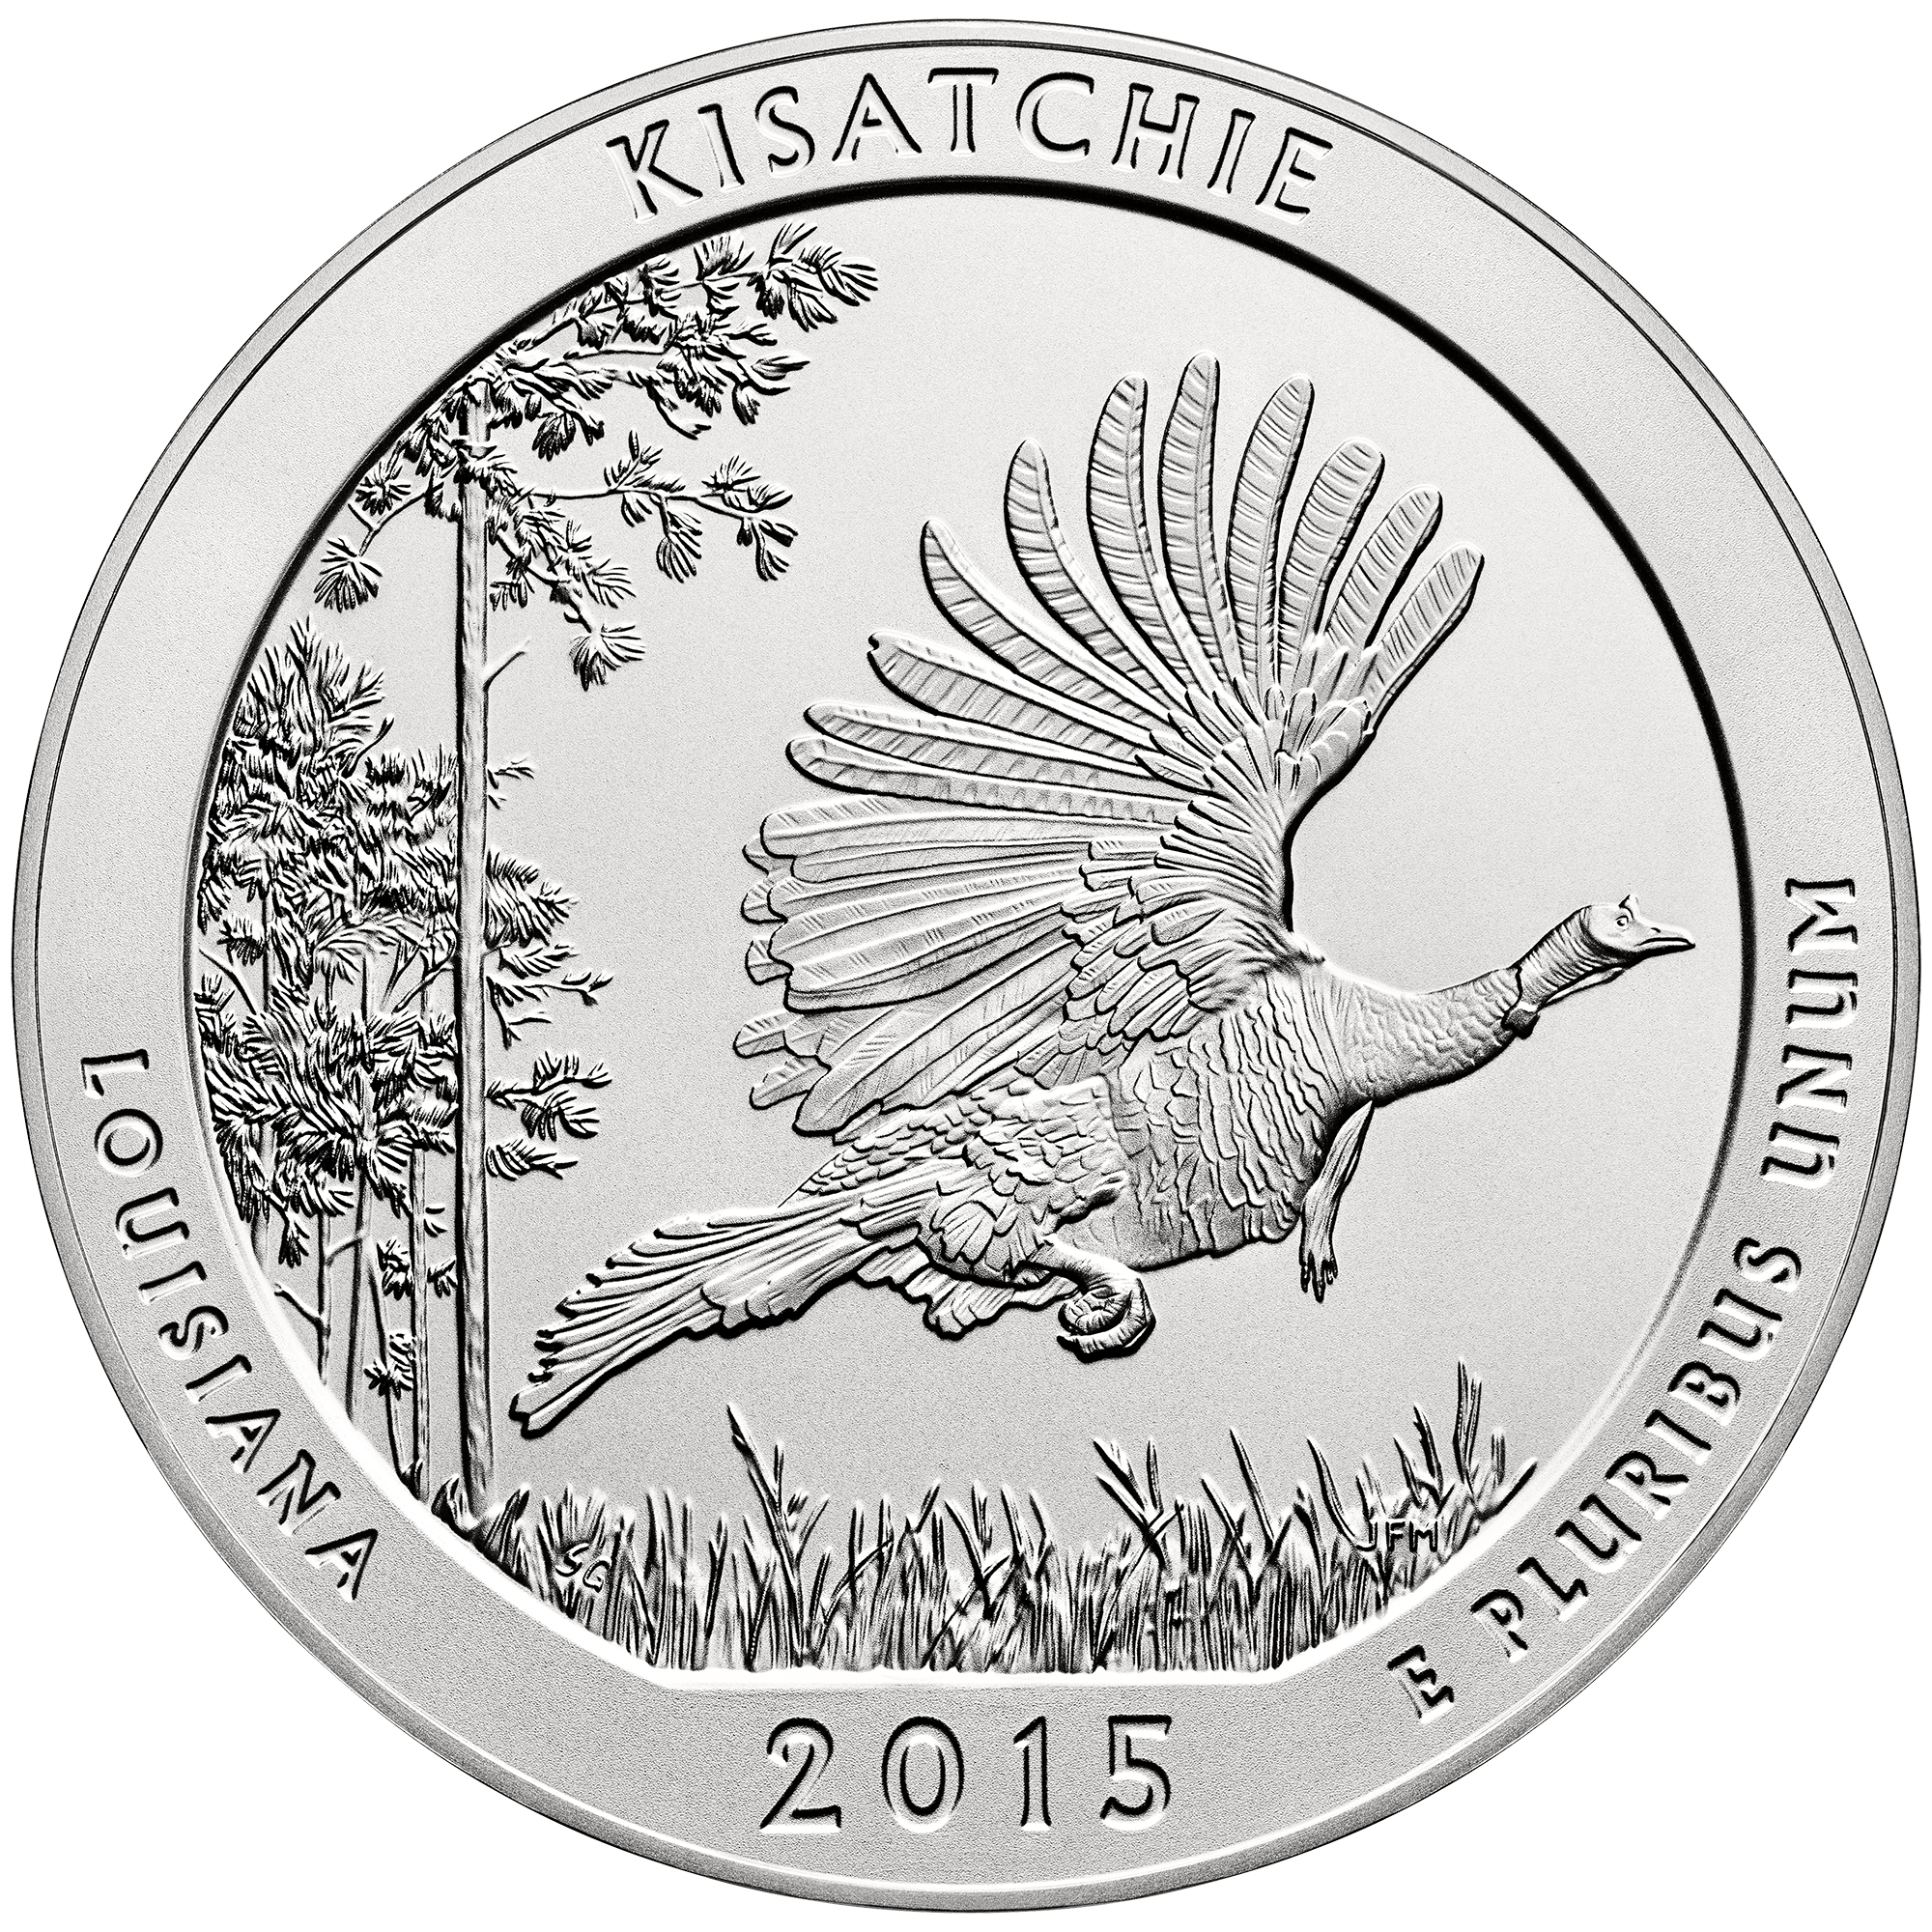 2015 America The Beautiful Quarters Five Ounce Silver Uncirculated Coin Kisatchie Louisiana Reverse